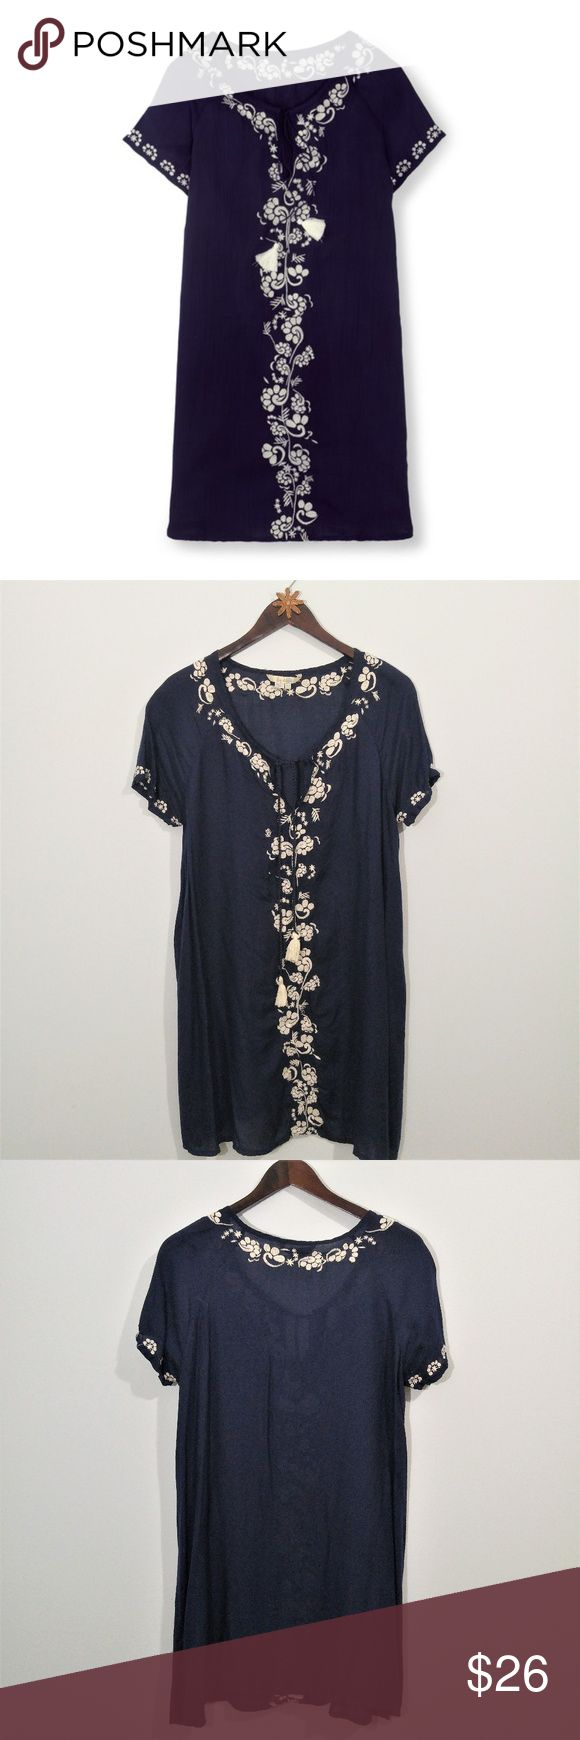 "Boden Corsica Kaftan Navy Blue / White Embroidery Gently pre-loved Boden Corsica kaftan in navy blue with white floral embroidery. Perfect on vacation, great at the beach or dressed up later.  Slightly sheer, very lightweight. Size 12 US  Approx measurements: Underarm to underarm 21"" Length shoulder to bottom hem 35""  Same day or next business day shipping. Offers always welcomed & bundles always discounted. ""Like"" my items for private flash sales! Thanks for looking :) Boden Dresses"